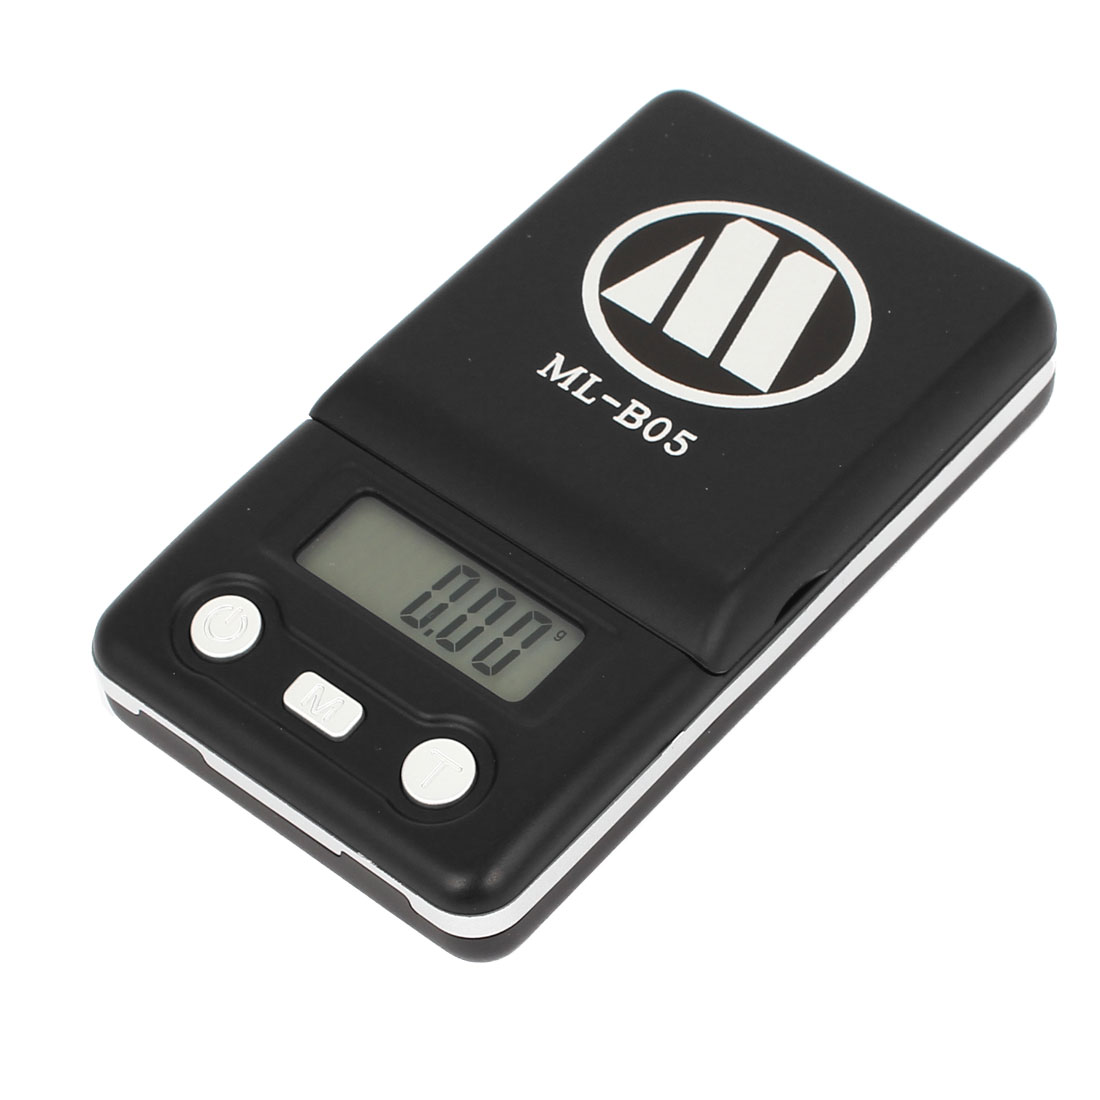 Handy 100g x 0.01g Jewelry Weight Balance Digital Pocket Scale